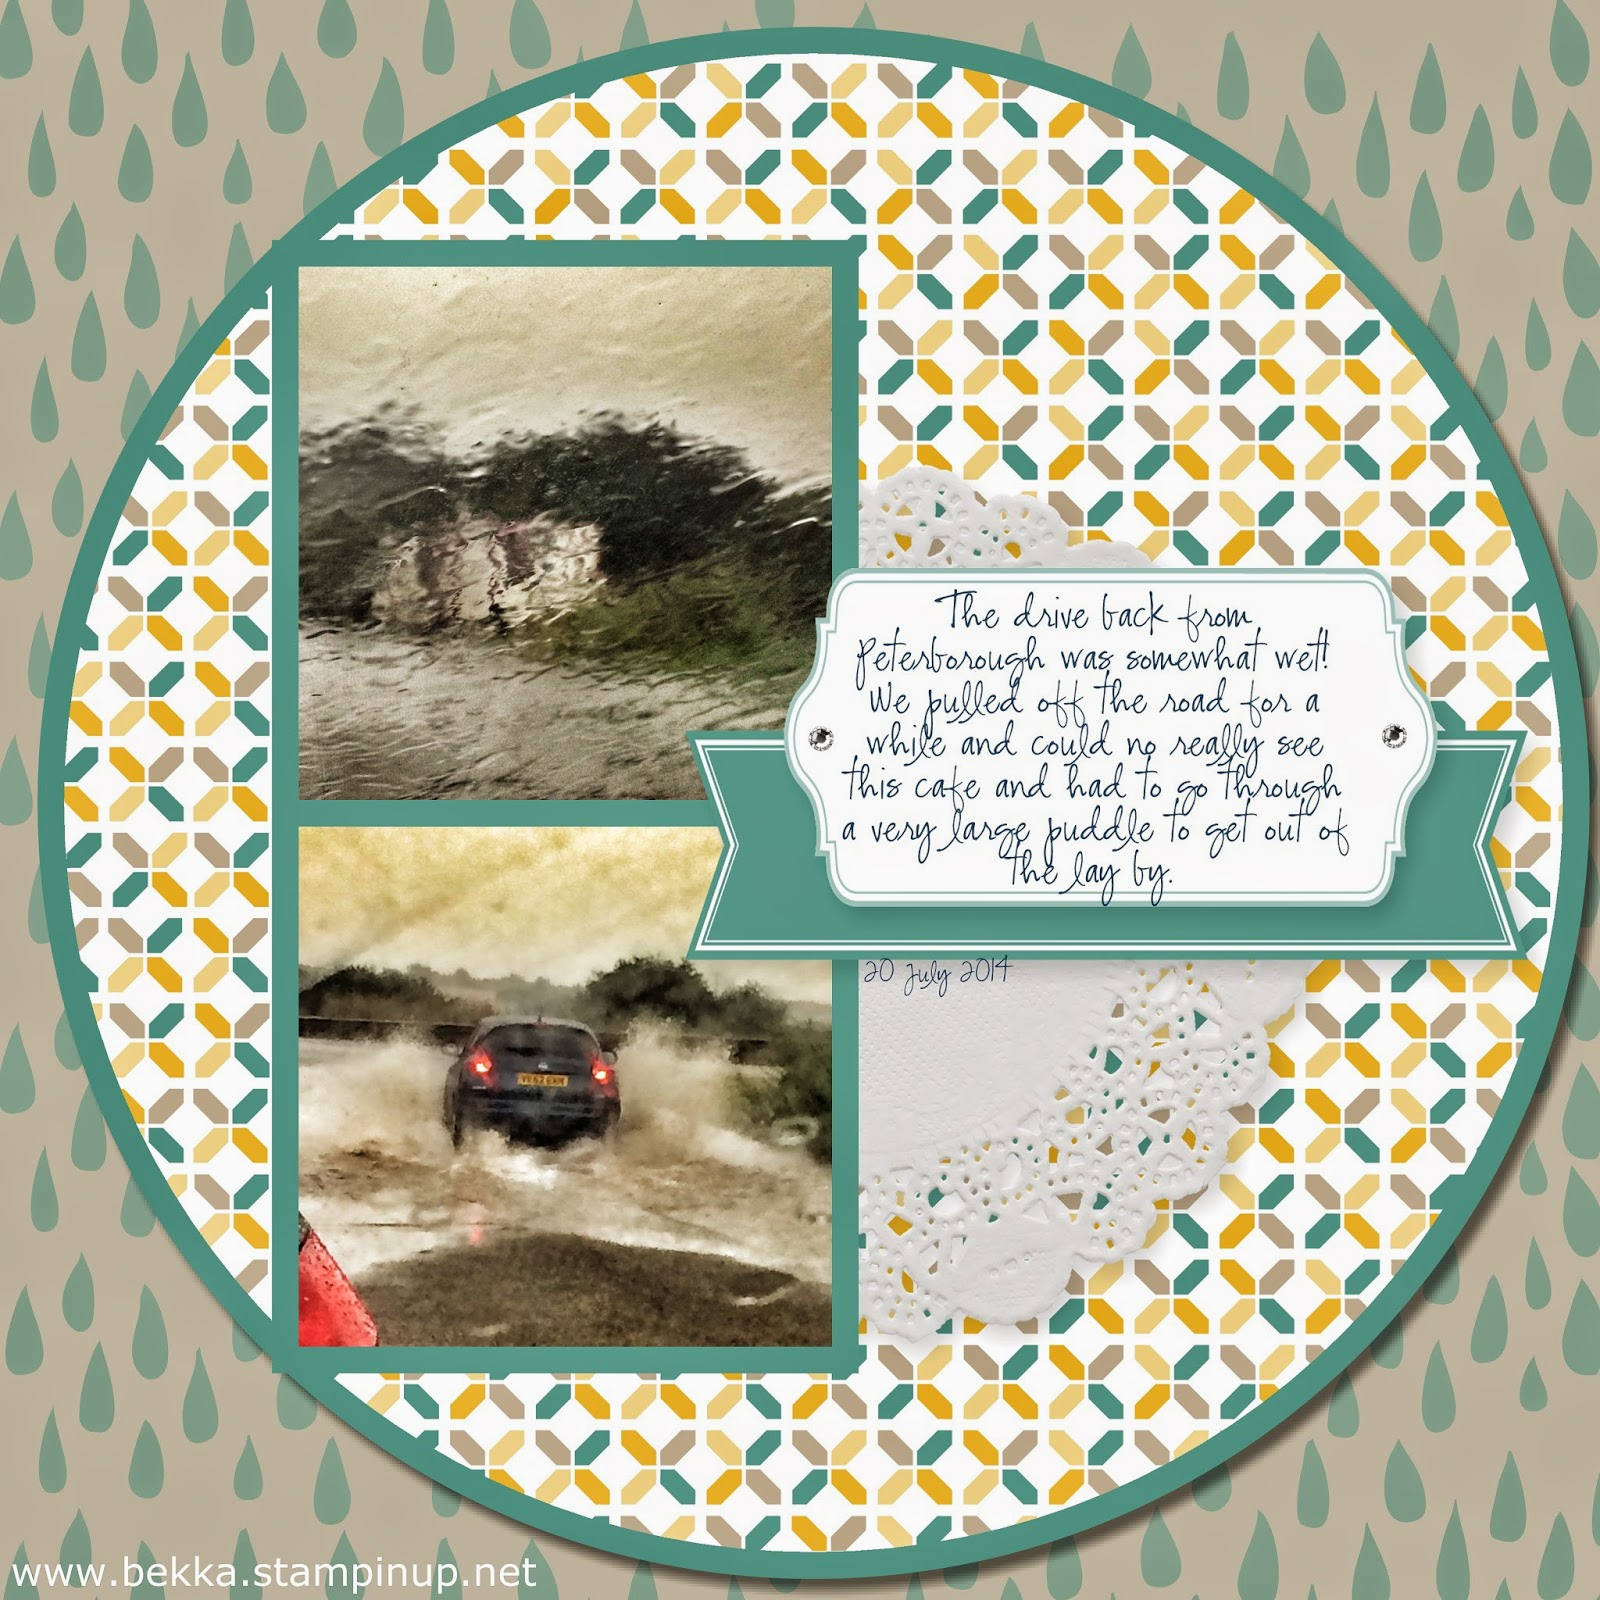 Digital Scrapbook Page by Stampin' Up! UK Independent Ddemonstrator Bekka Prideaux - check out her digital projects every Monday